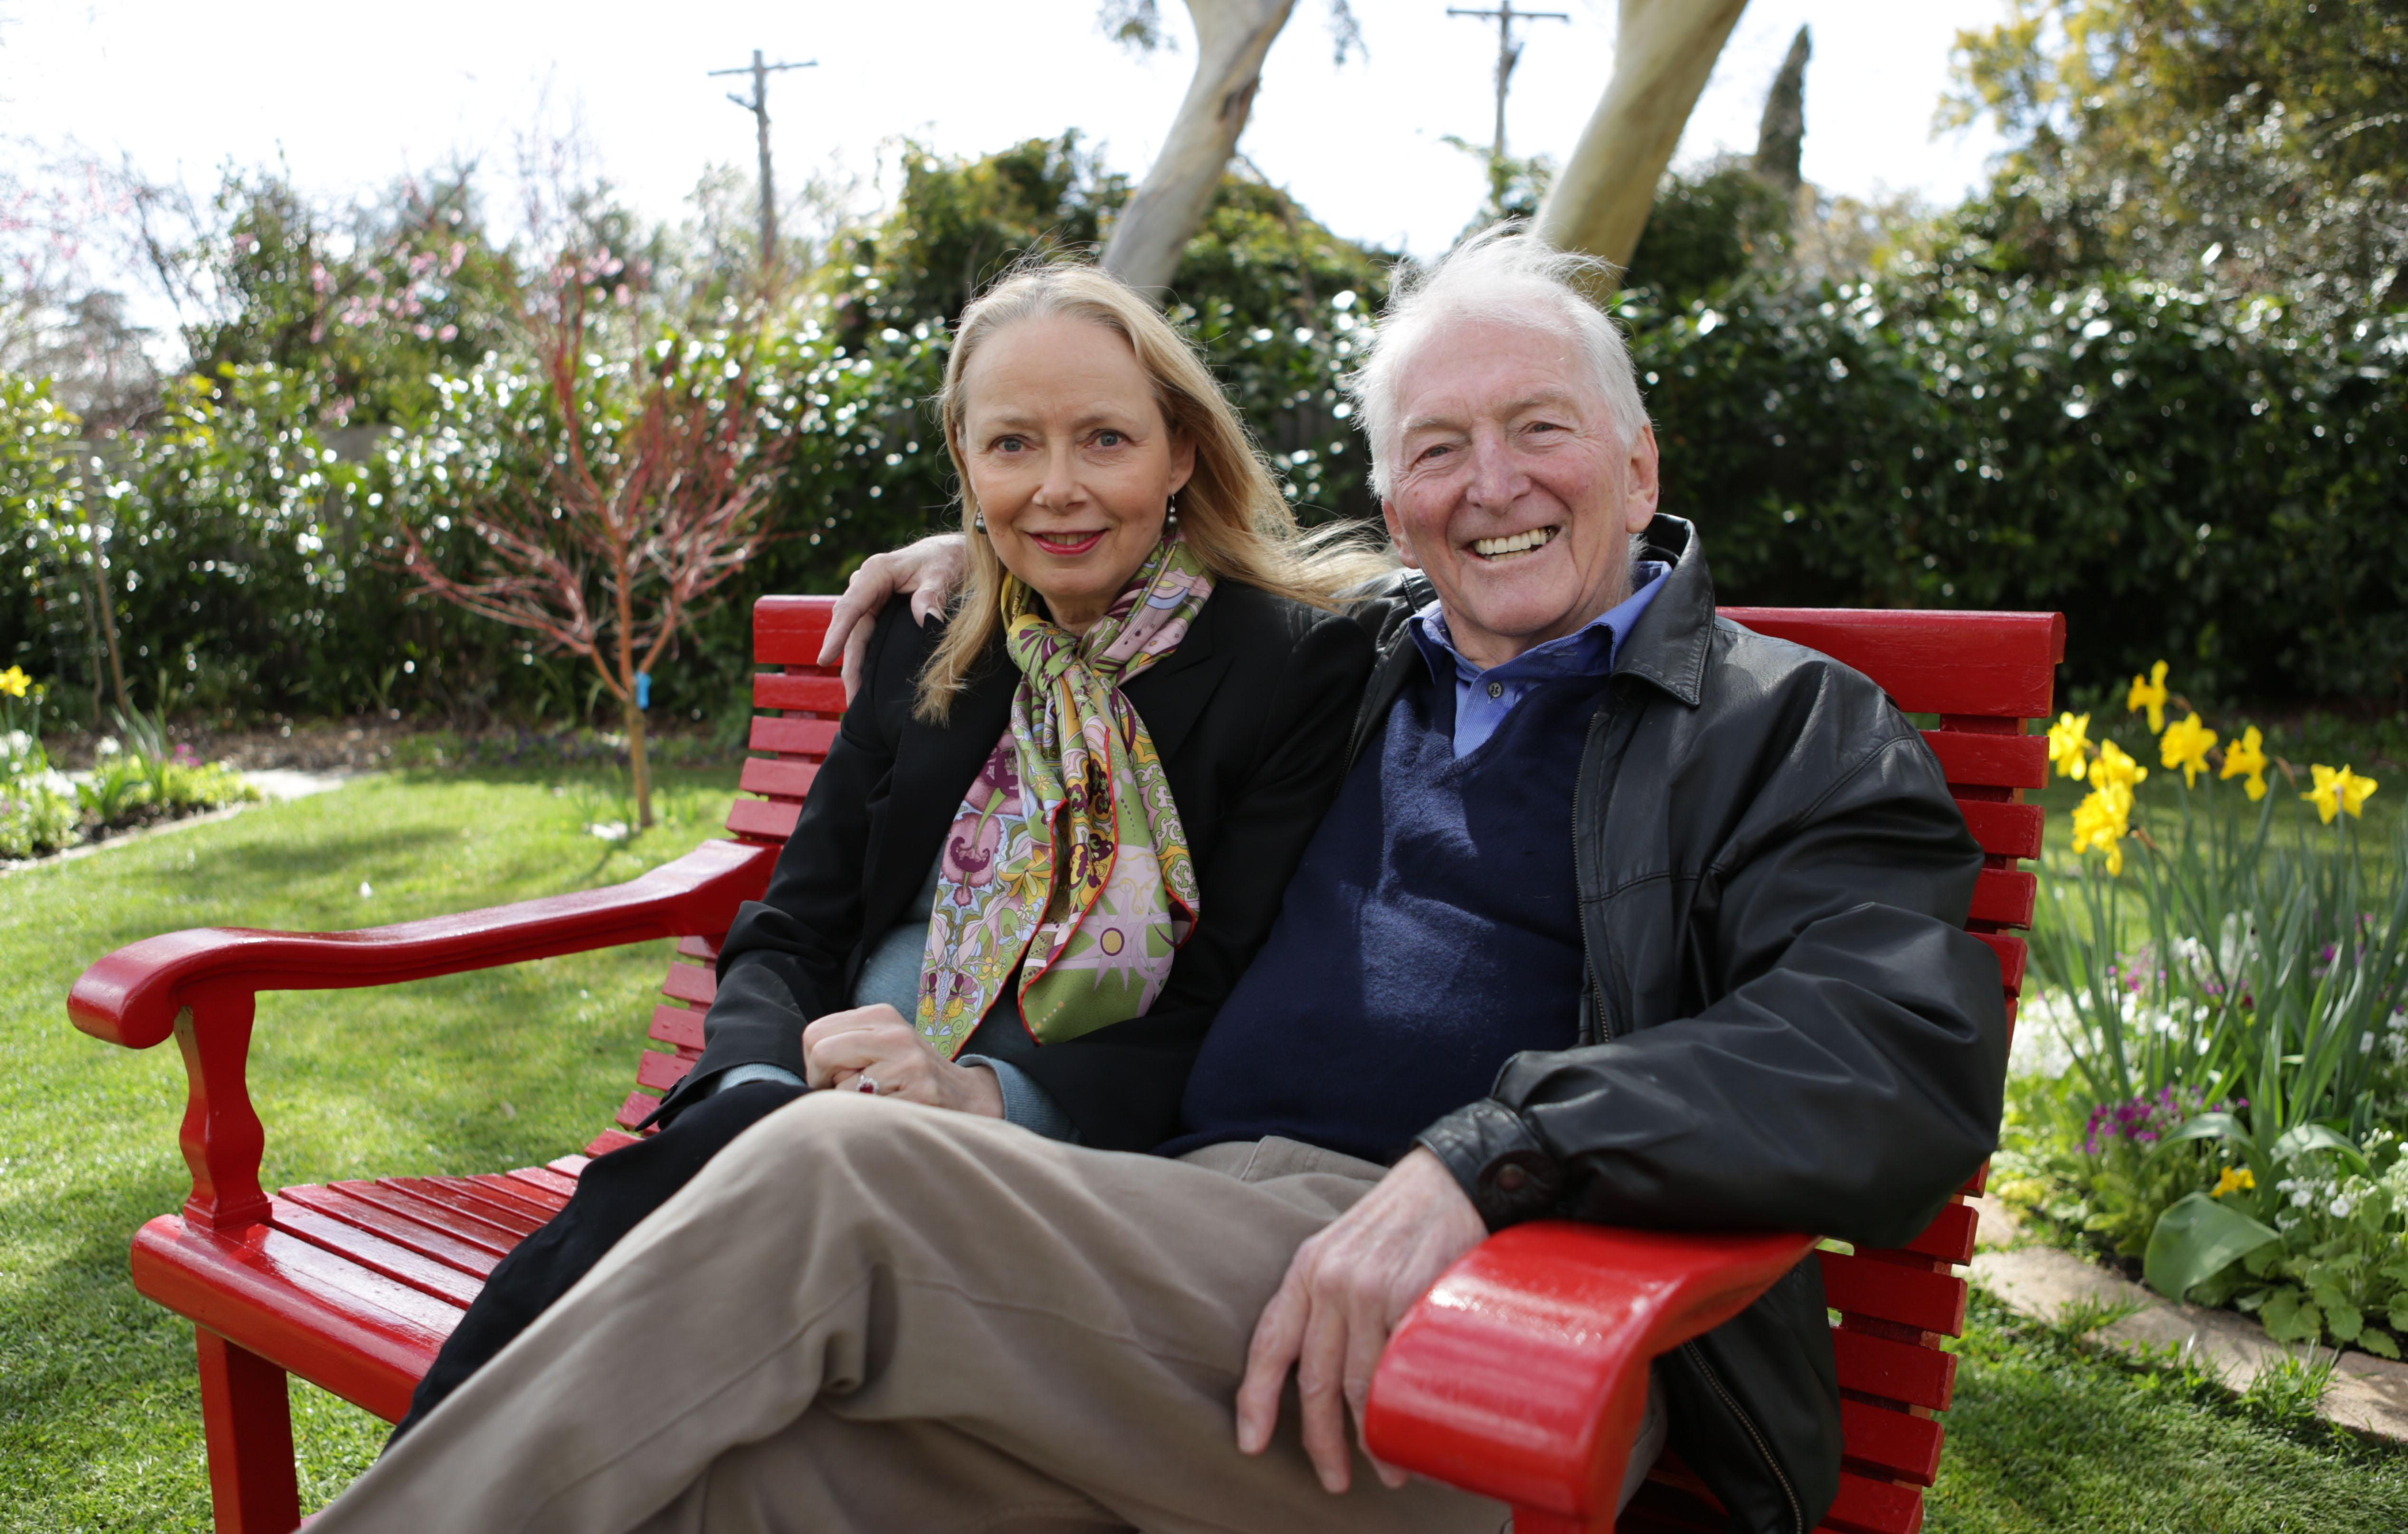 "In this Aug. 30, 2012 photo provided by Penguin Books, Australian best-selling author Bryce Courtenay poses with wife Christine Gee on a park bench in Canberra Australia Courtenay, author of ""The Power Of One"" and 20 other titles died Thursday Nov. 22, 2012 of stomach cancer. He was 79. (AP Photo/Penguin Books) EDITORIAL USE ONLY, NO SALES"